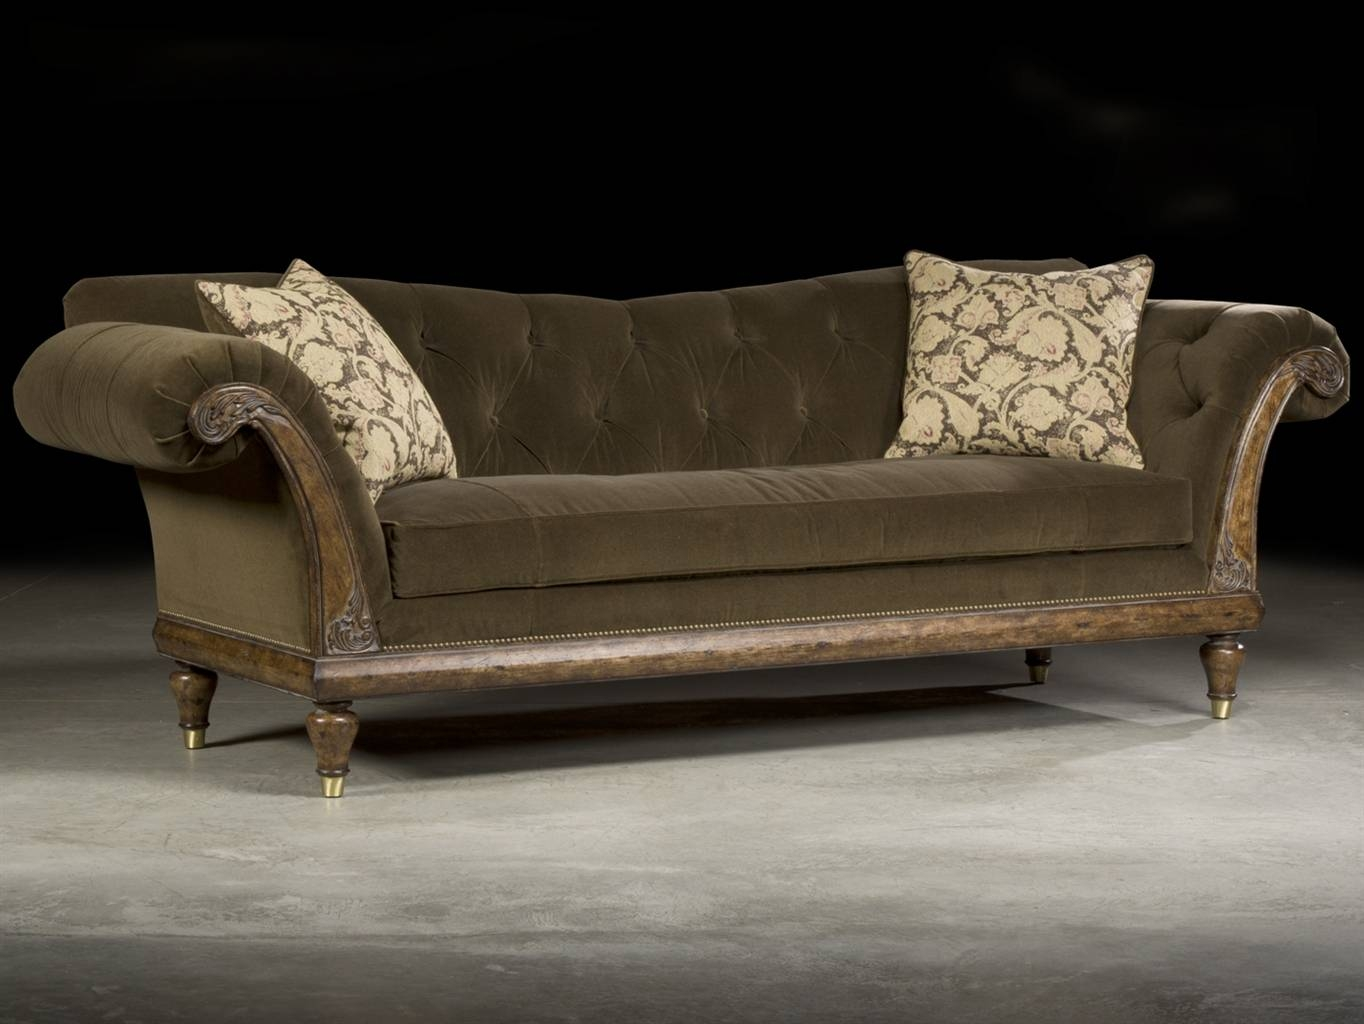 Amazing Tufted Velvet Sofa 68 On Contemporary Sofa Inspiration inside Brown Velvet Sofas (Image 2 of 15)